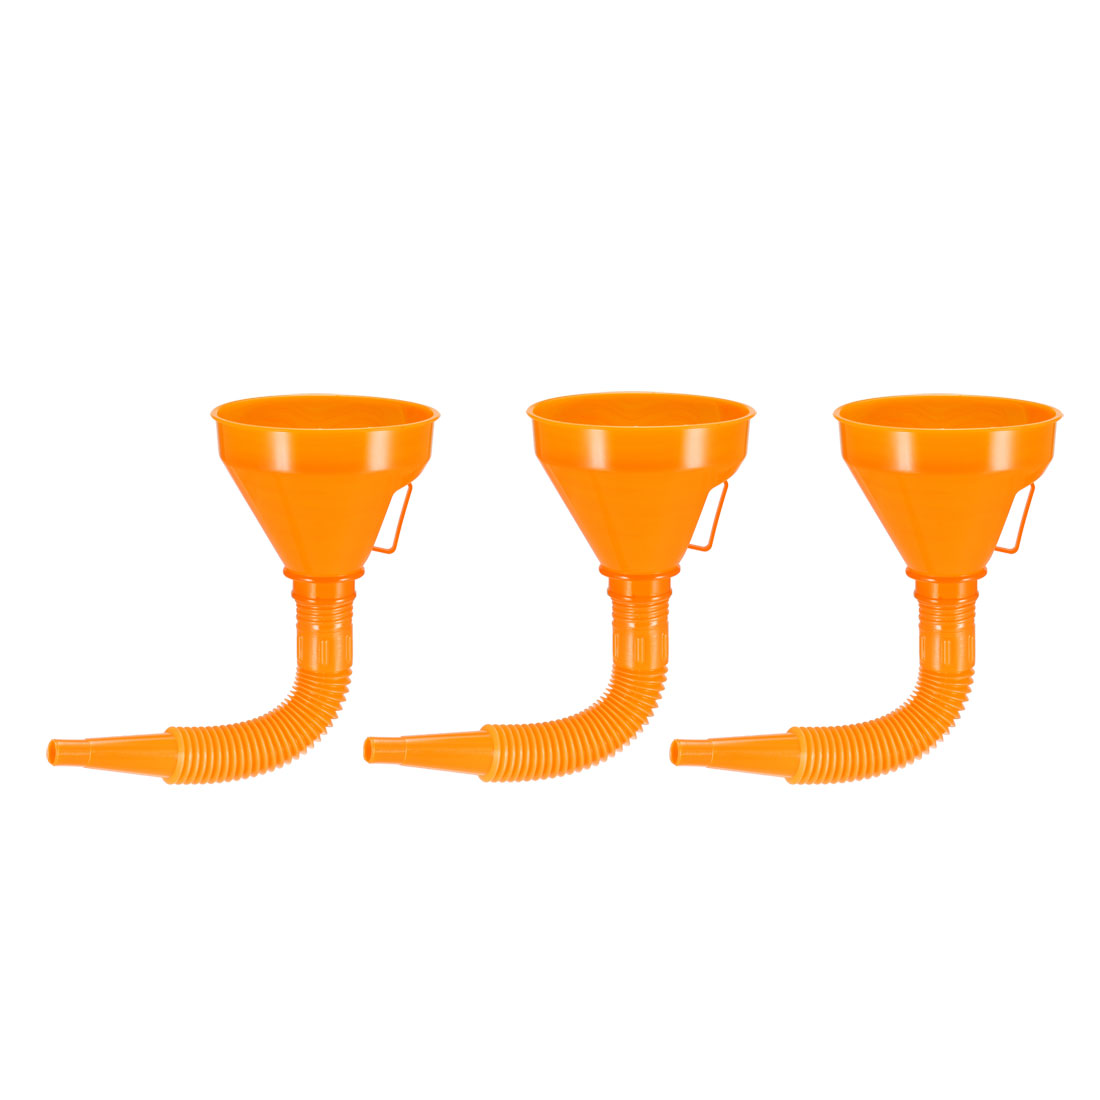 Filter Funnel 5inch Plastic Feul Funnel with Tube Orange for Oil Water Fuel 3pcs